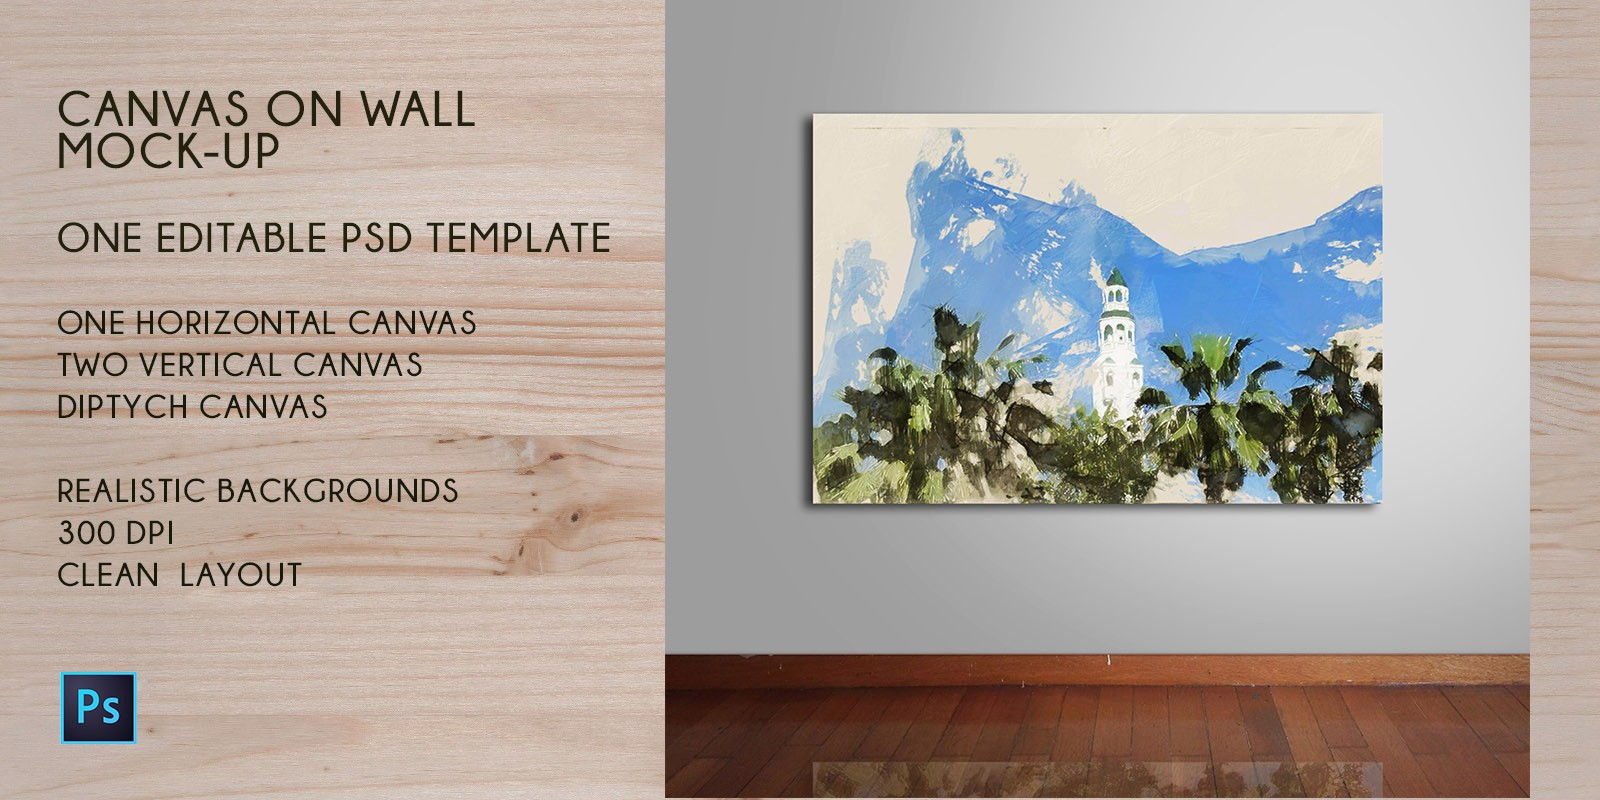 Canvas on Wall Mock-Up PSD Template